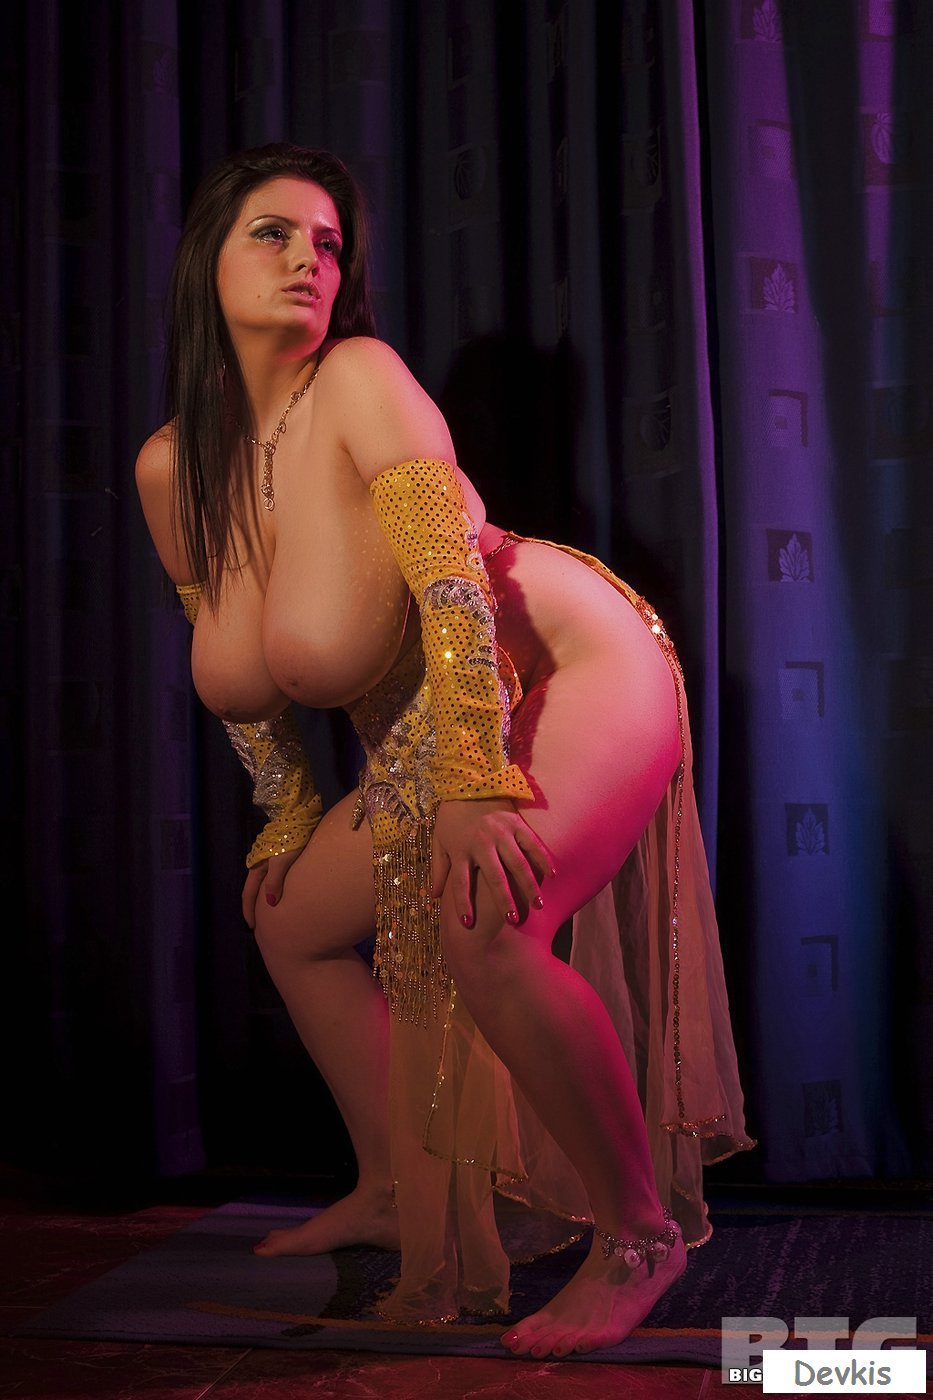 belly-dance-video-boobs-hot-naked-playboy-college-girls